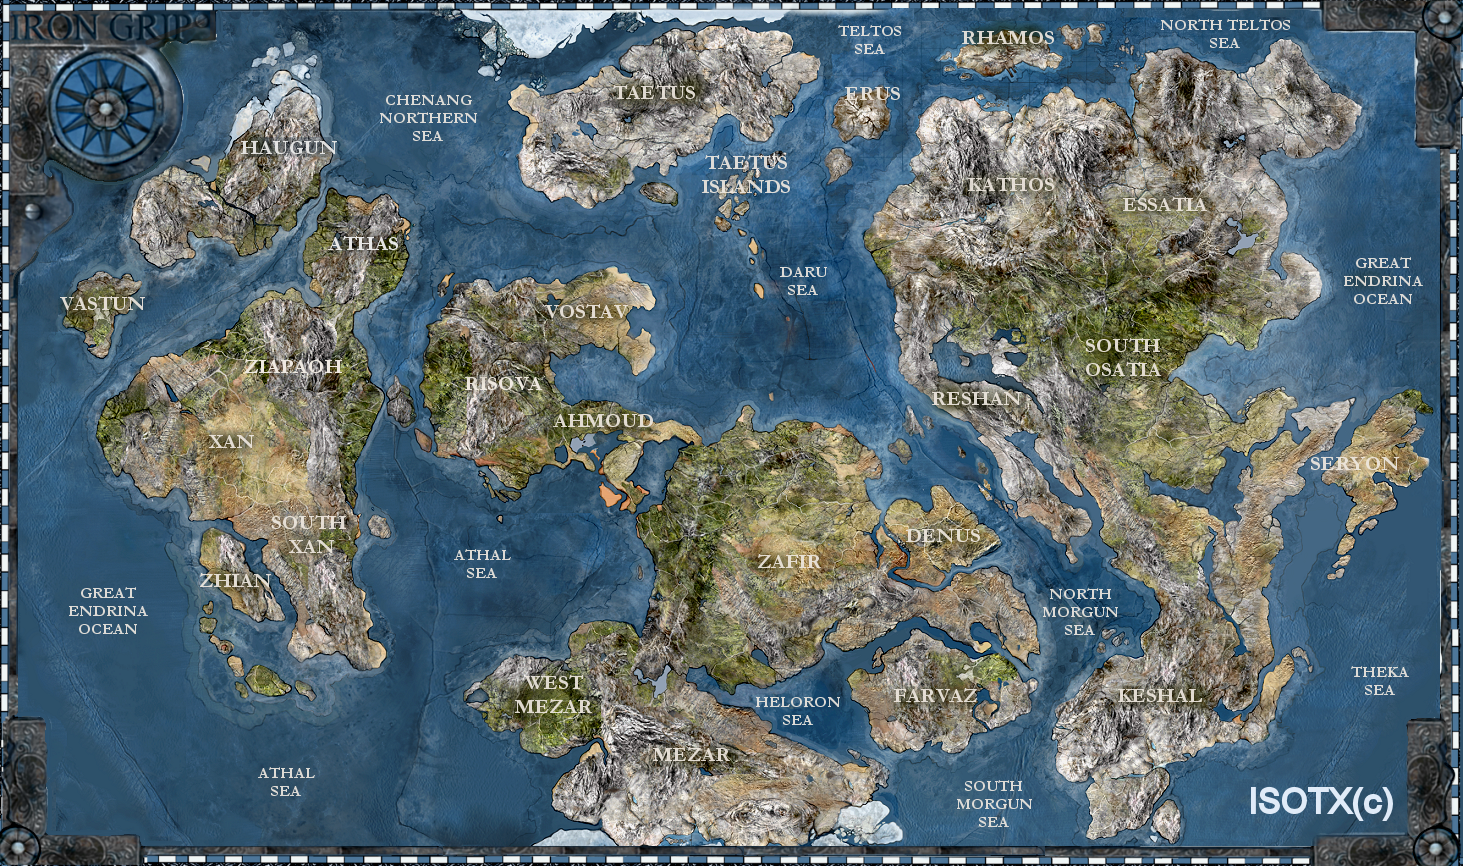 Iron Grip World Map By Monkey Paw On Deviantart Book Places In